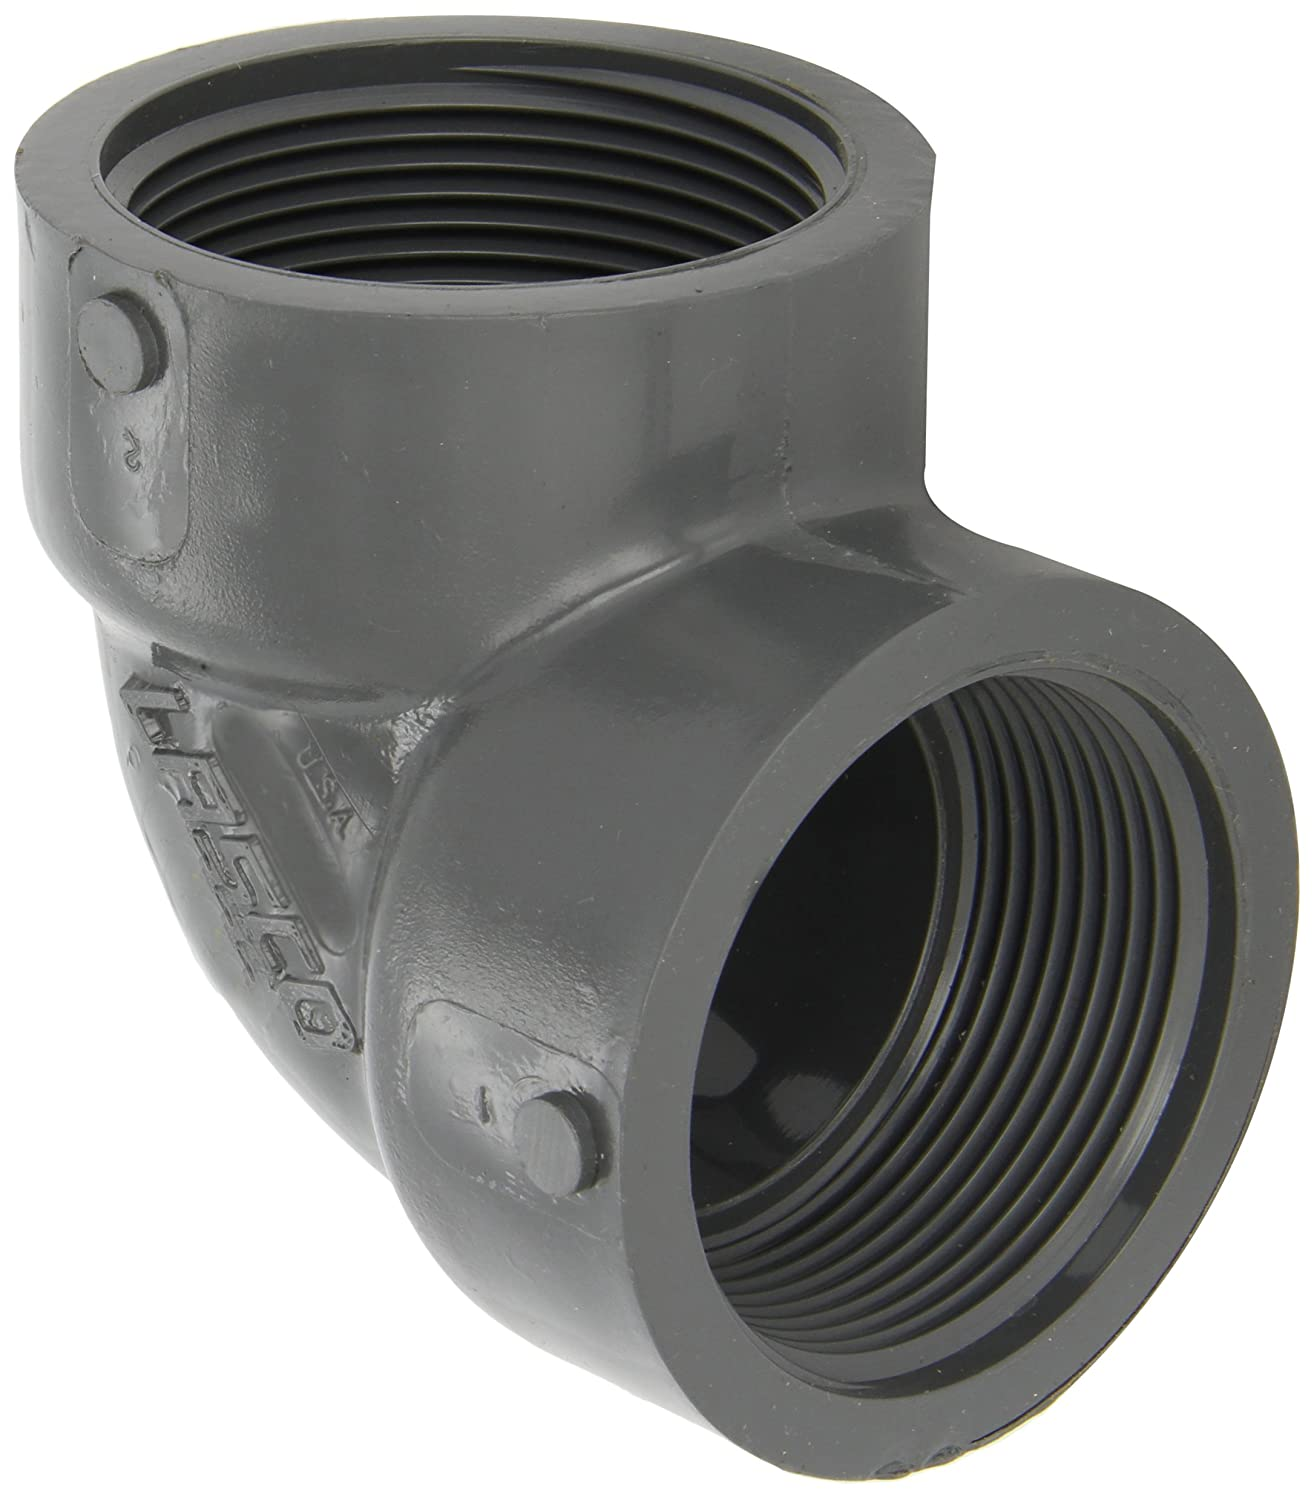 GF Piping Systems PVC Pipe Fitting 1-1//2 NPT Female Tee Schedule 80 Gray